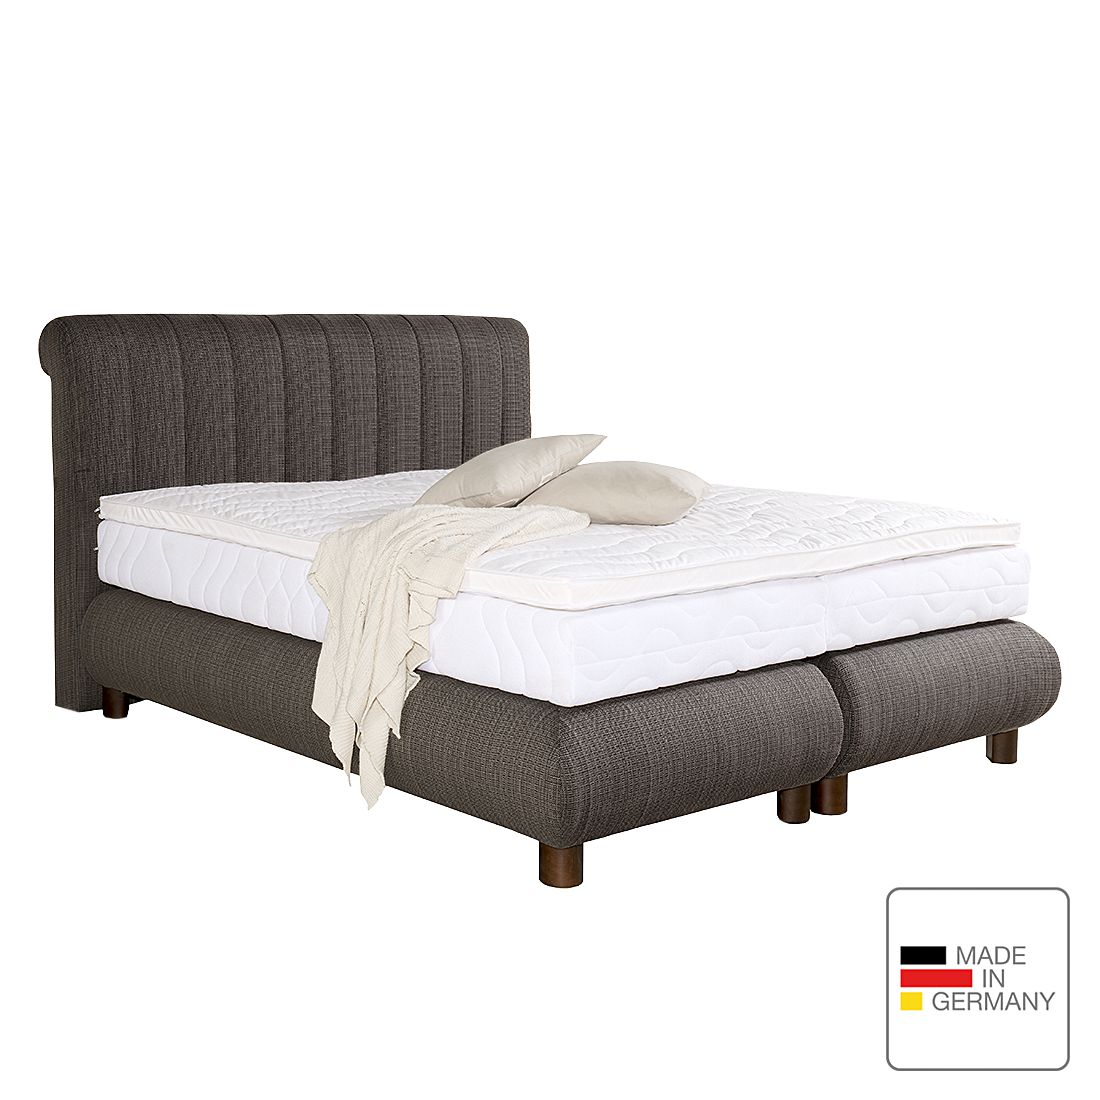 boxspringbett romeo strukturstoff 90 x 200cm h2 bis 80 kg visco kaltschaummatratze. Black Bedroom Furniture Sets. Home Design Ideas